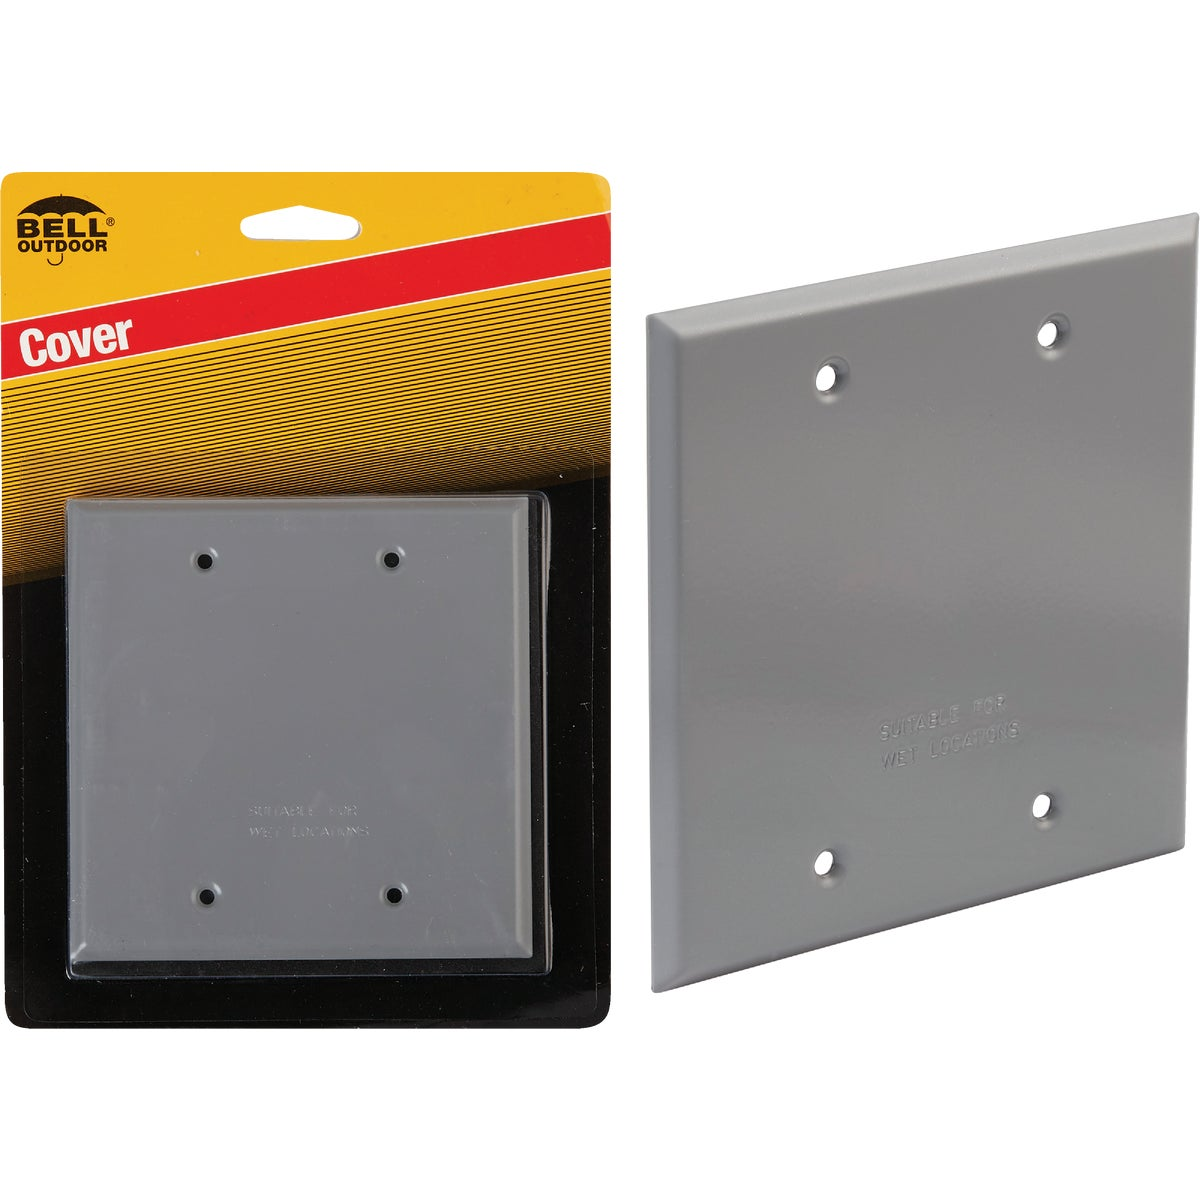 Bell 2-Gang Blank Weatherproof Outdoor Box Cover